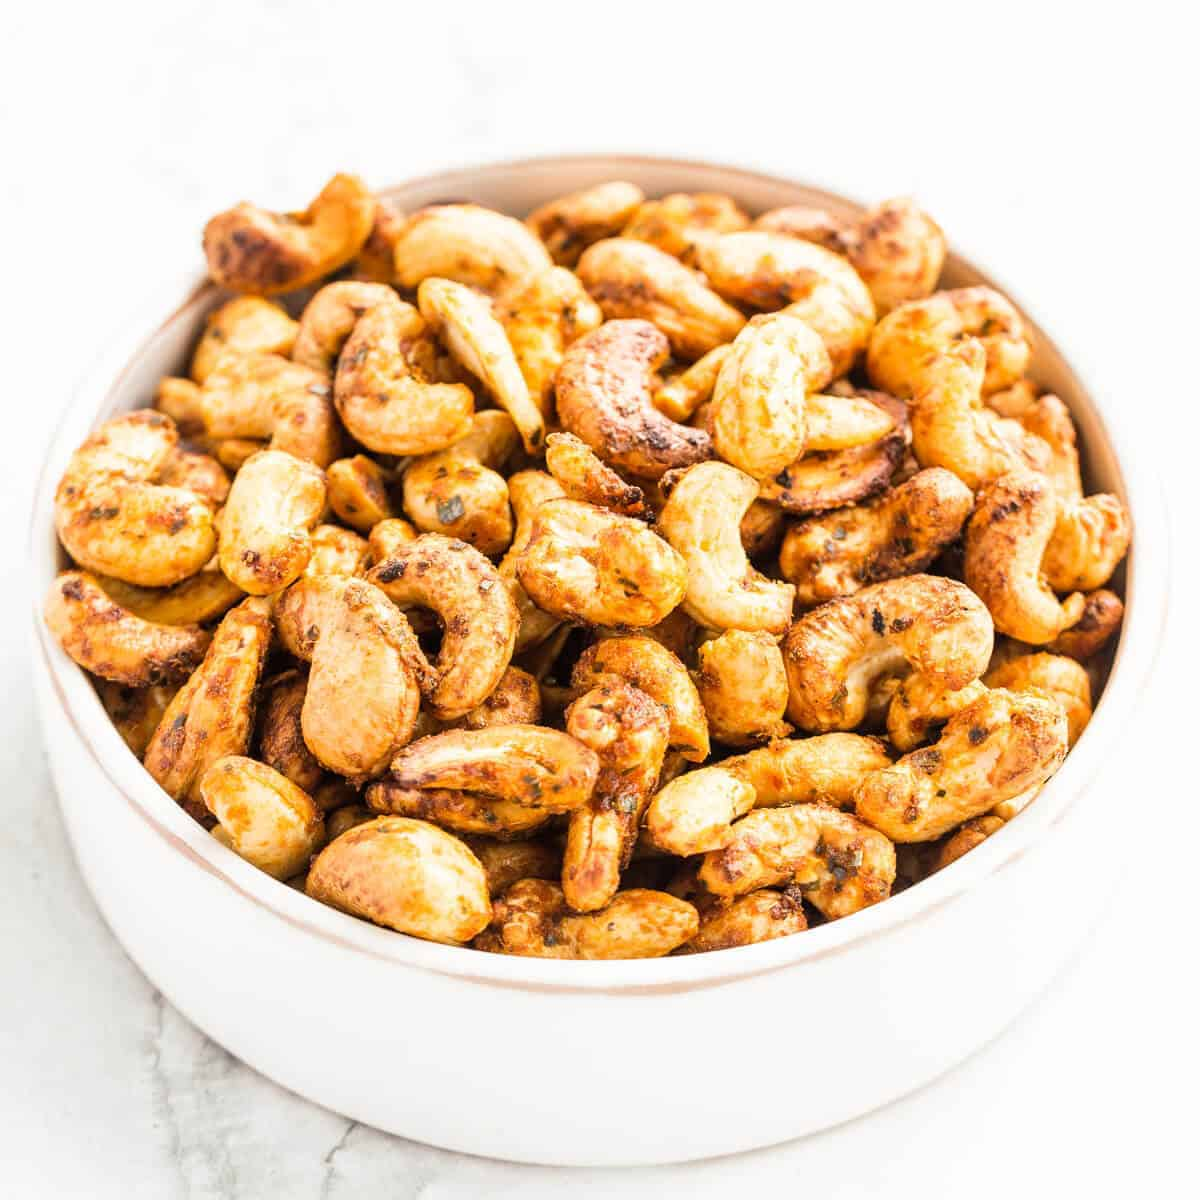 roasted Thai spiced cashew nuts